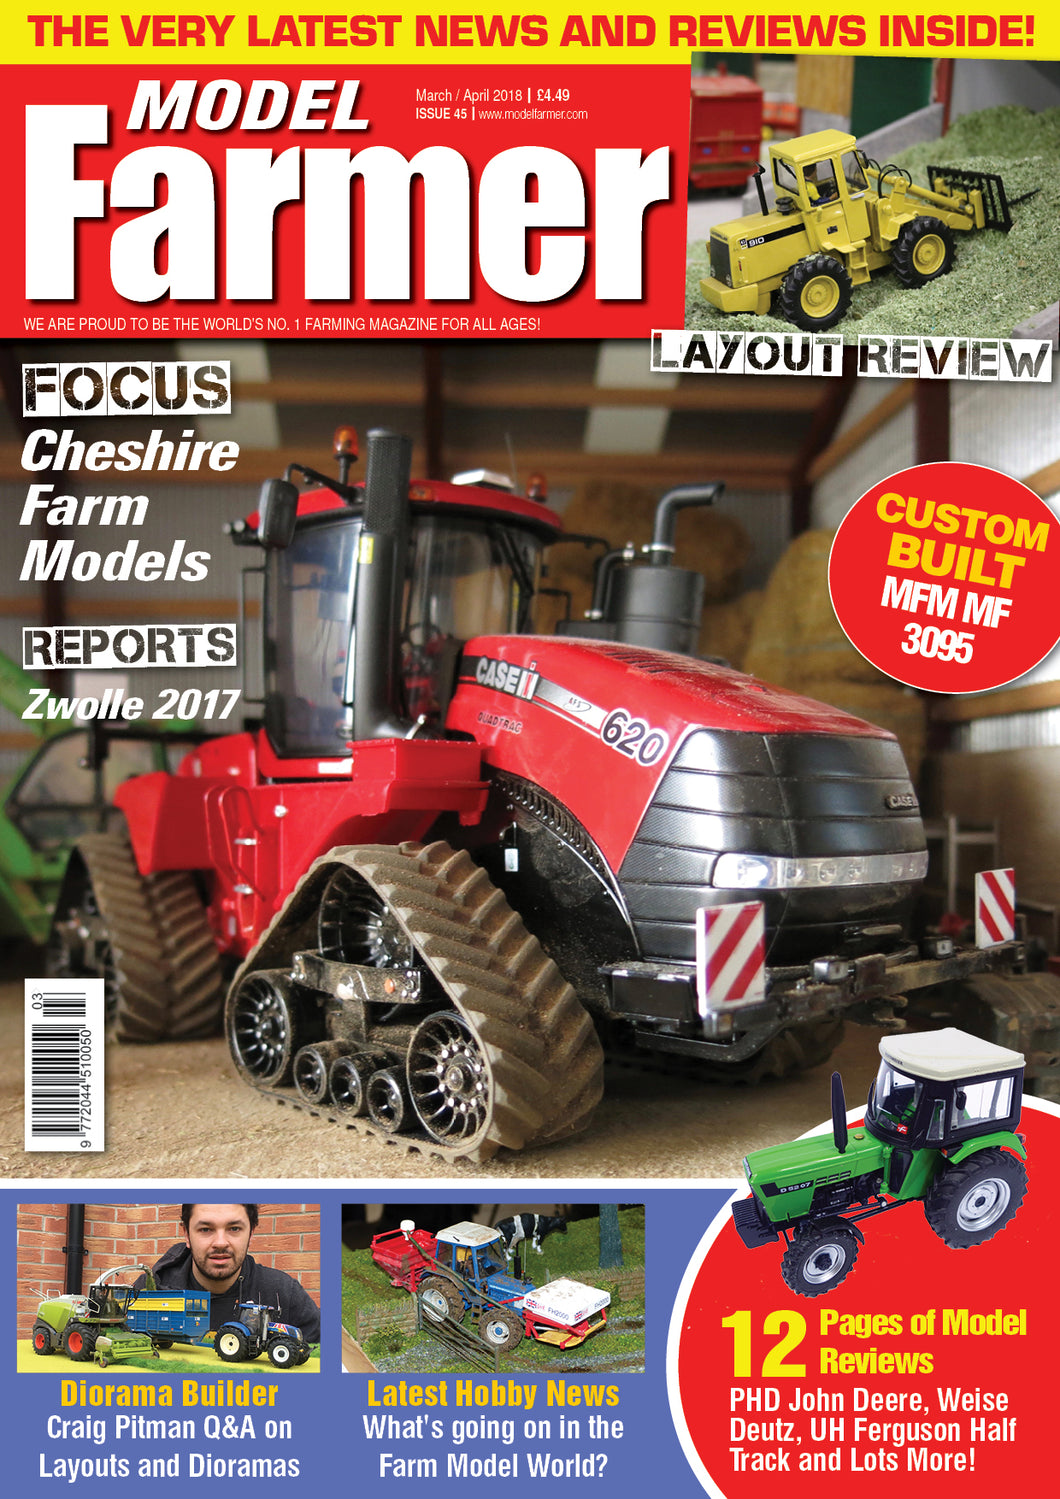 Model Farmer Issue No. 45 March April 2018 - Digital Edition